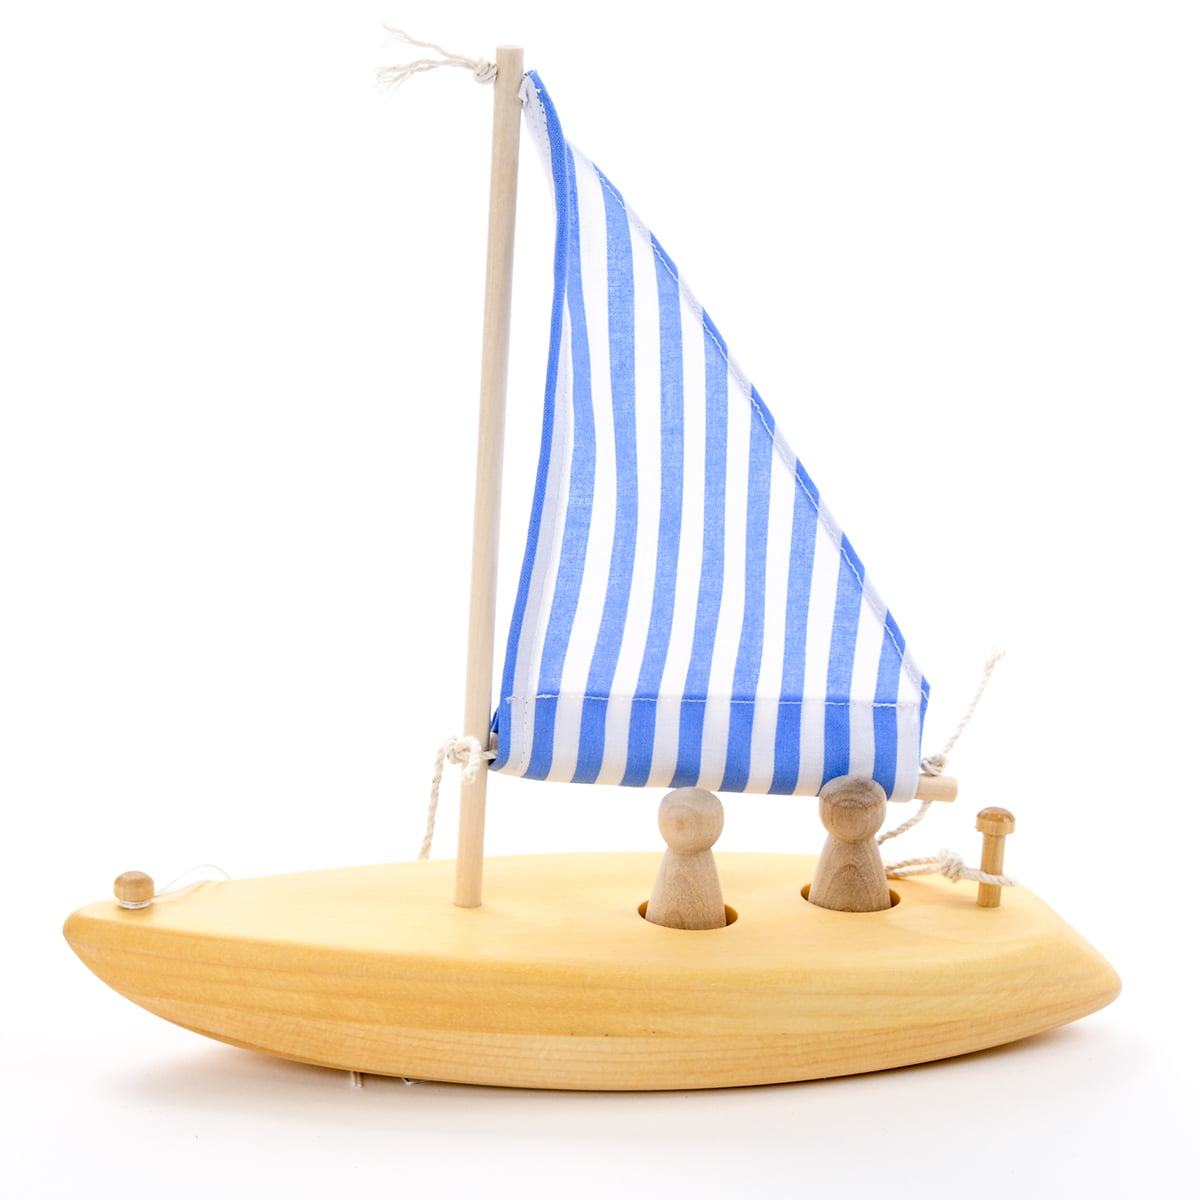 Wooden Toy Sailboat Made in USA by